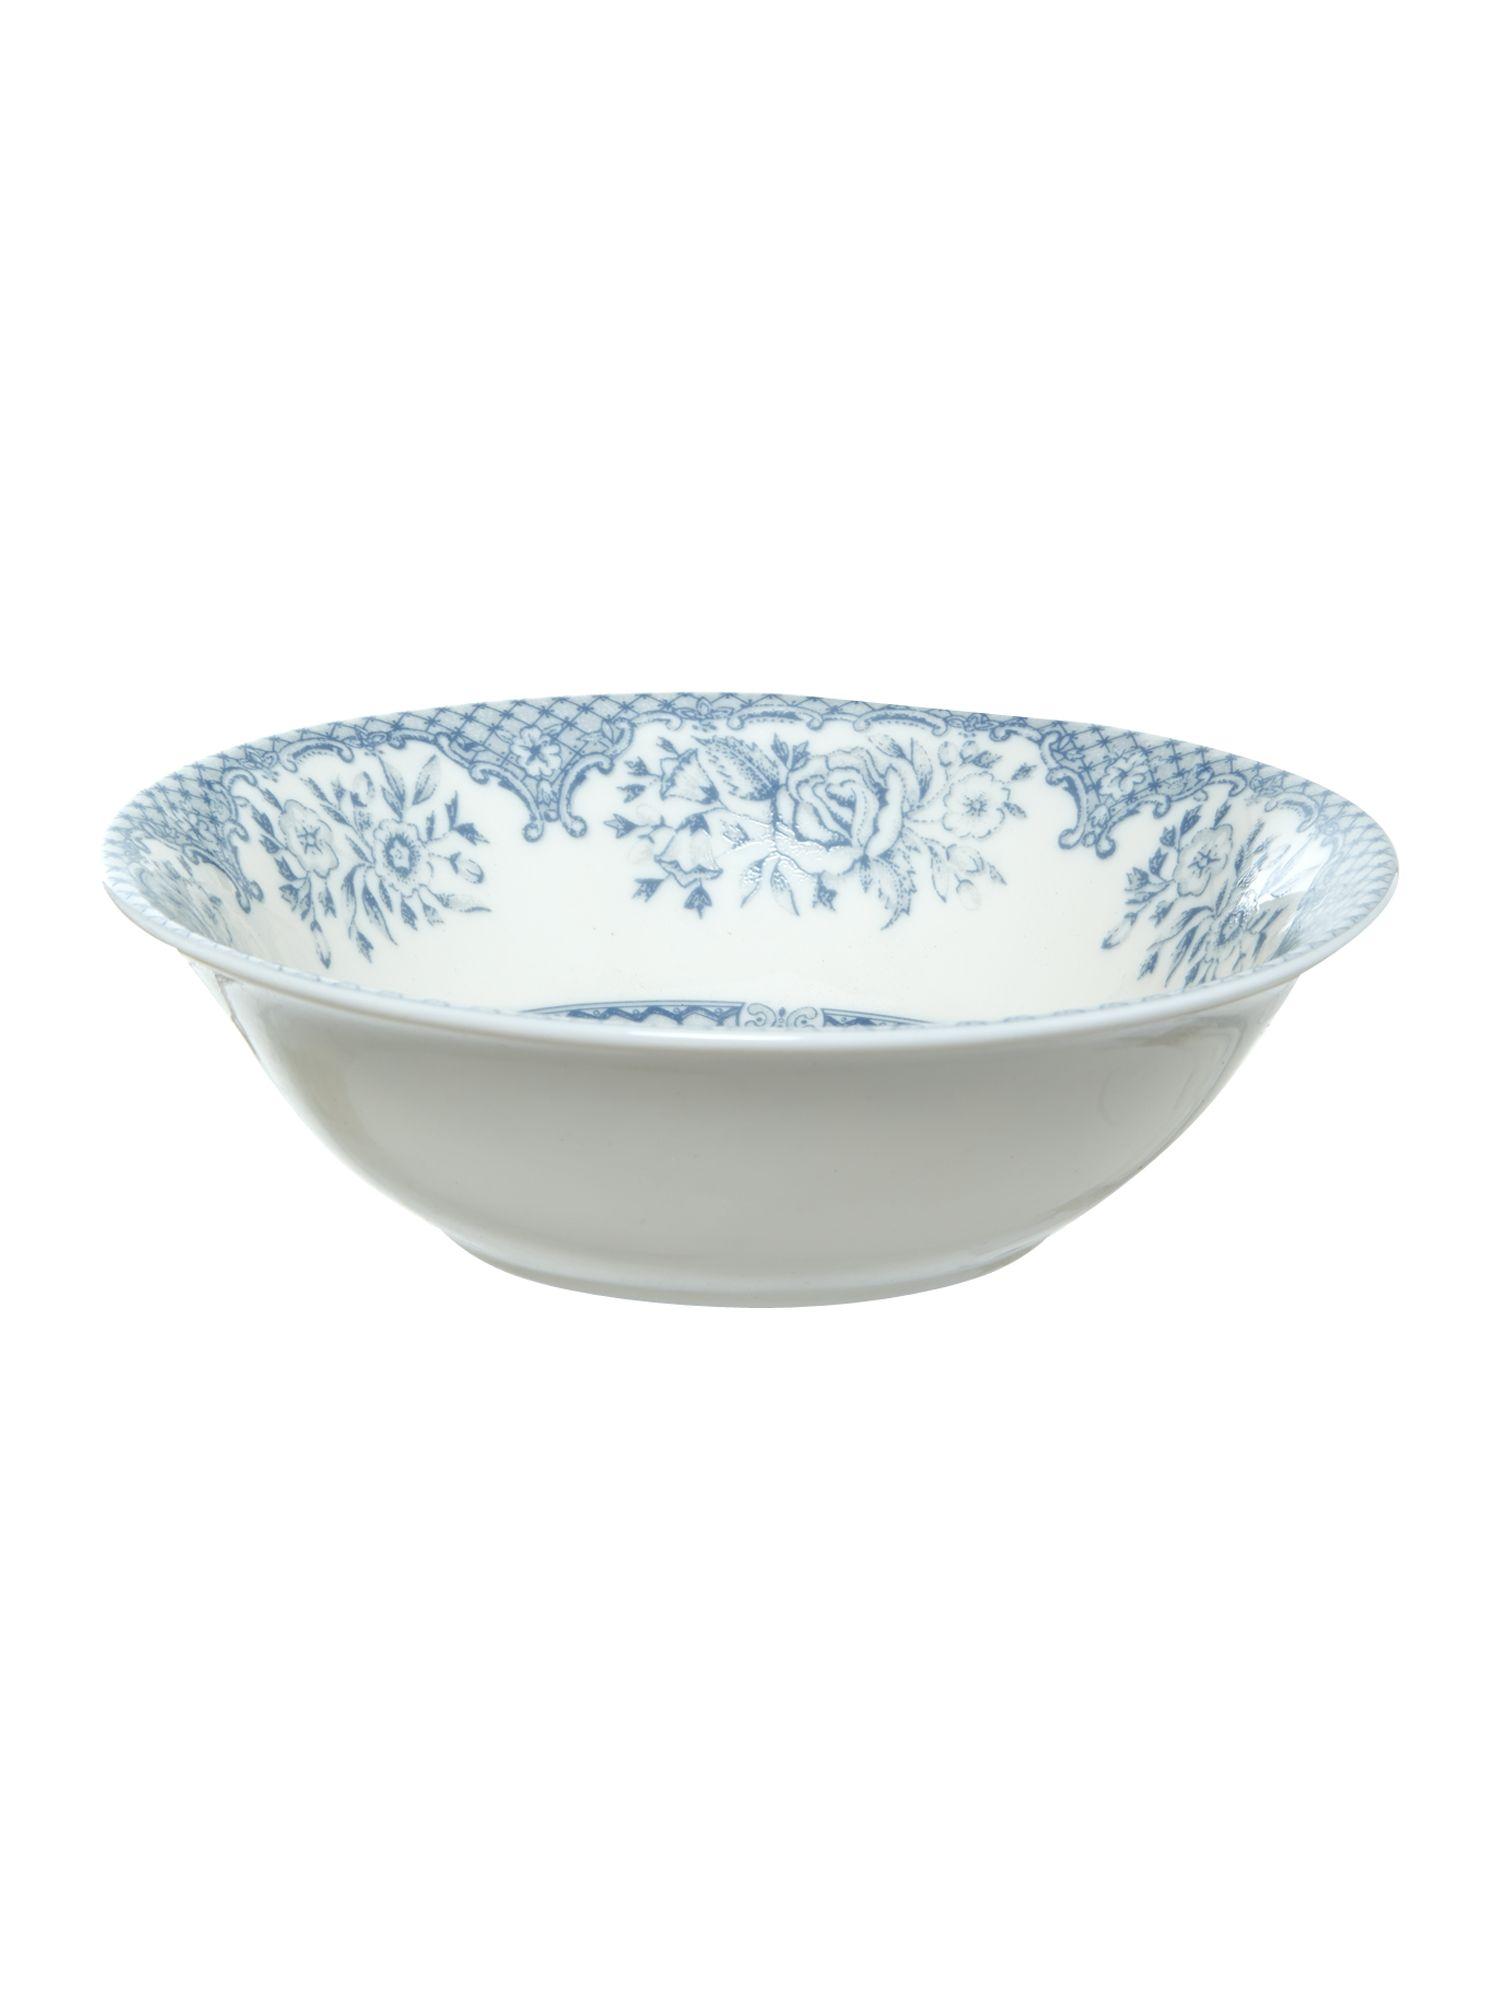 Kew blue cereal bowl